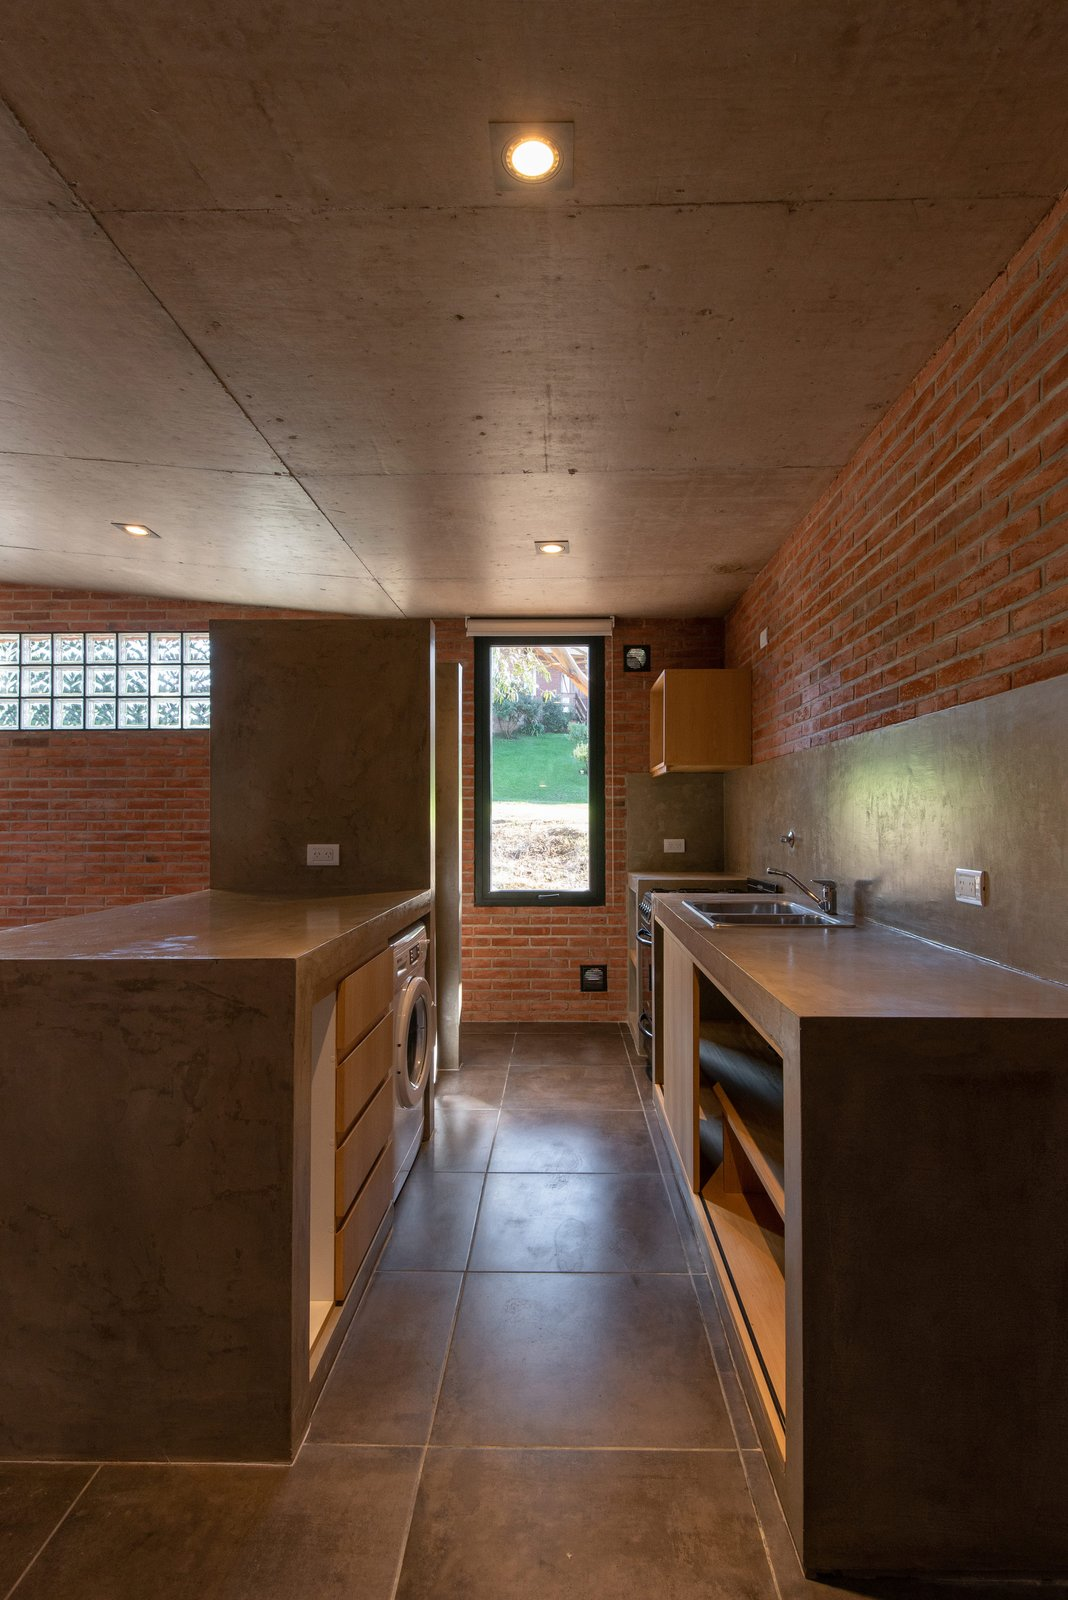 Kitchen, Ceiling, Refrigerator, Concrete, Microwave, Ceramic Tile, Wood, Drop In, and Concrete  Best Kitchen Microwave Drop In Wood Refrigerator Photos from Casa RINCÓN